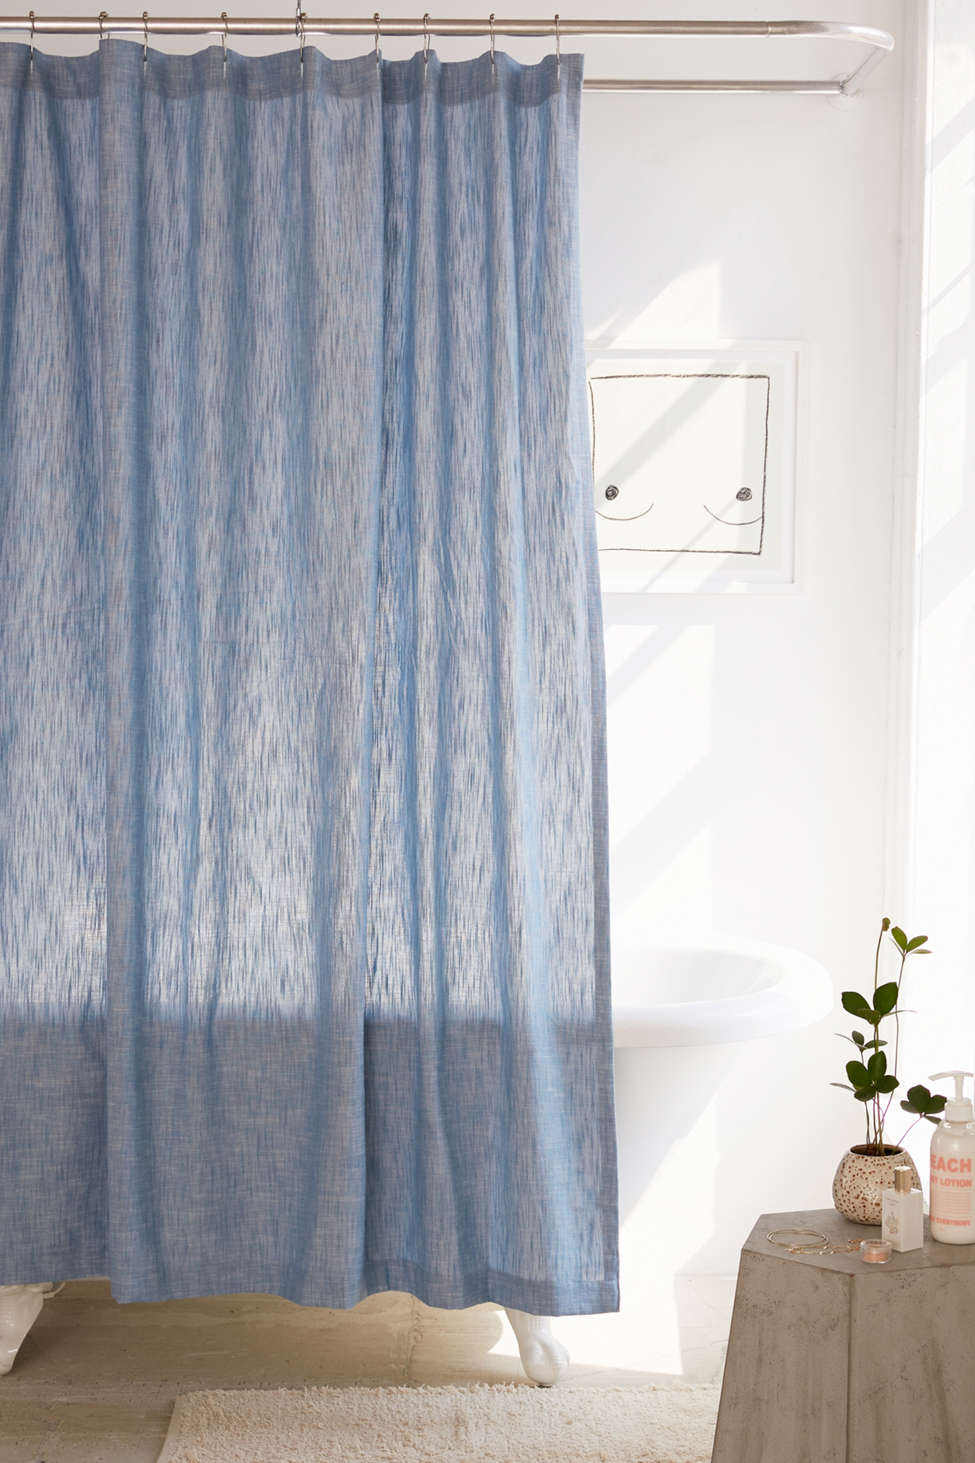 Slide View: 1: Calypso Chambray Shower Curtain